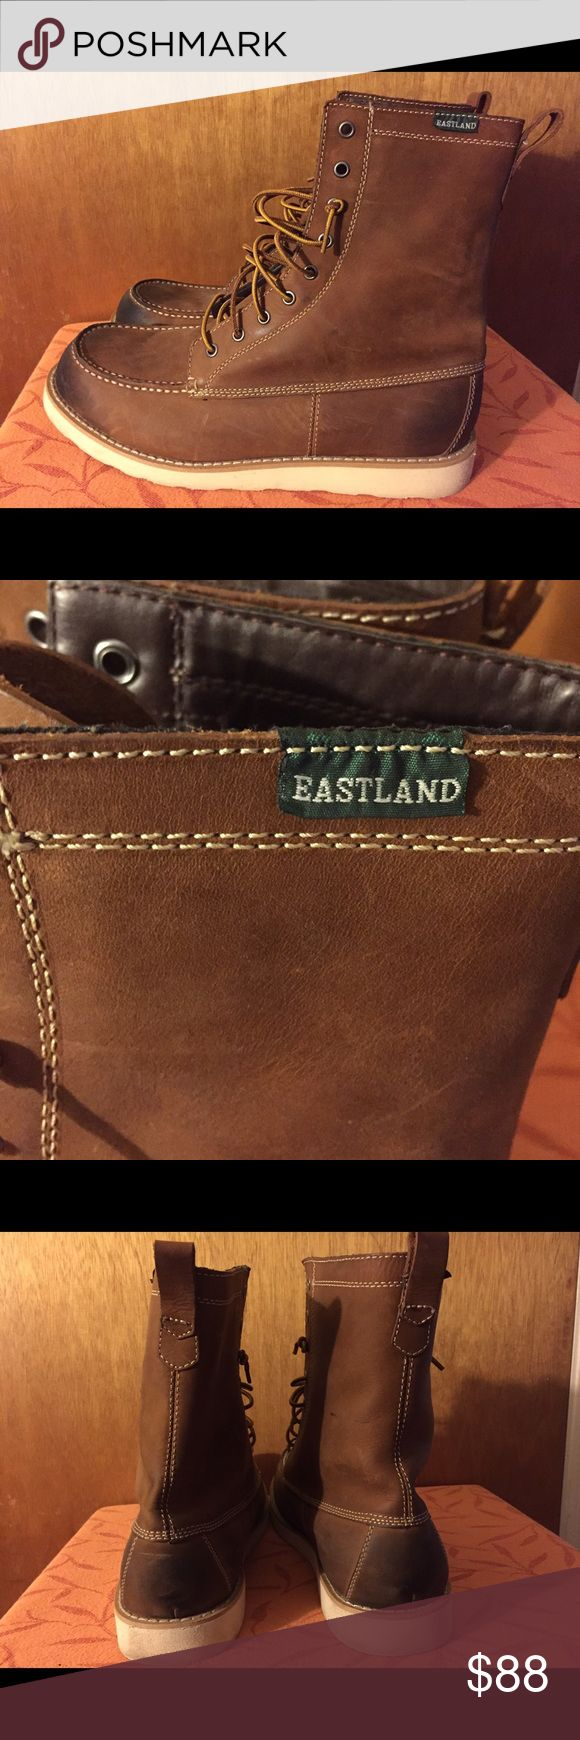 Men's Eastland Limited Edition Boots Size 13 Eastland Lumber Up Limited Edition Boots. Size: Men's 13 Color: Peanut  These are in like new condition. Worn once. These retail for $125.  Heel height: 1 inch  Toe height: 1/2 inch Eastland Shoes Boots